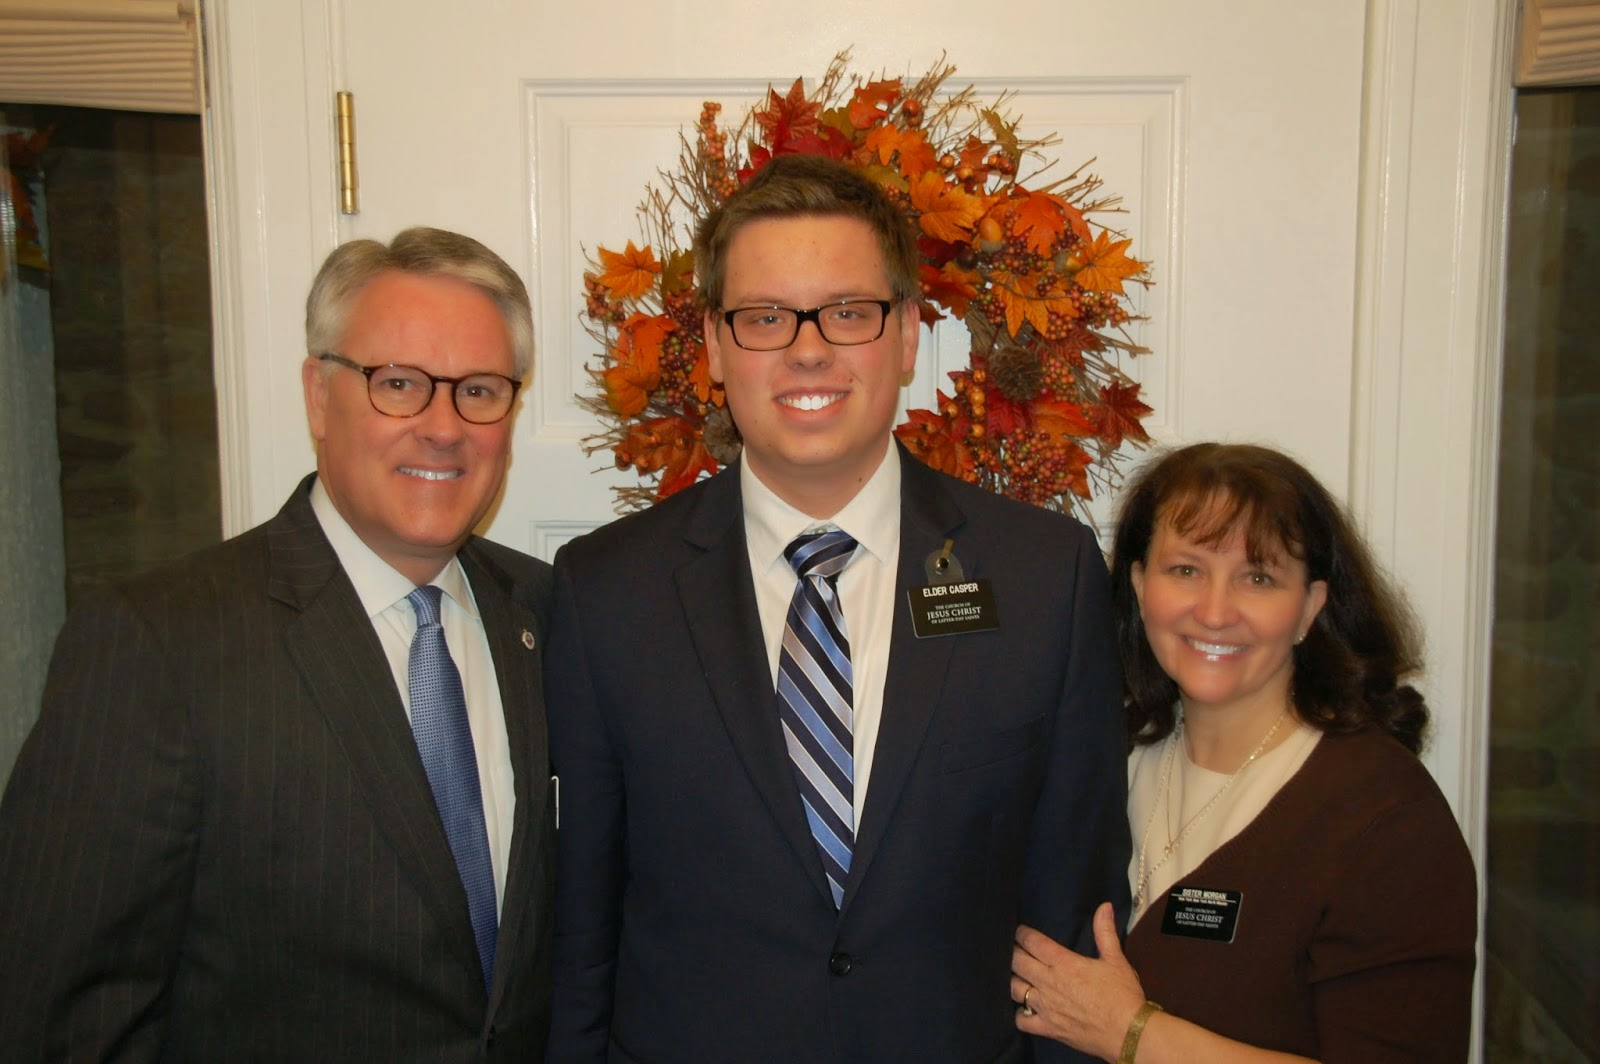 Elder Domenick Casper